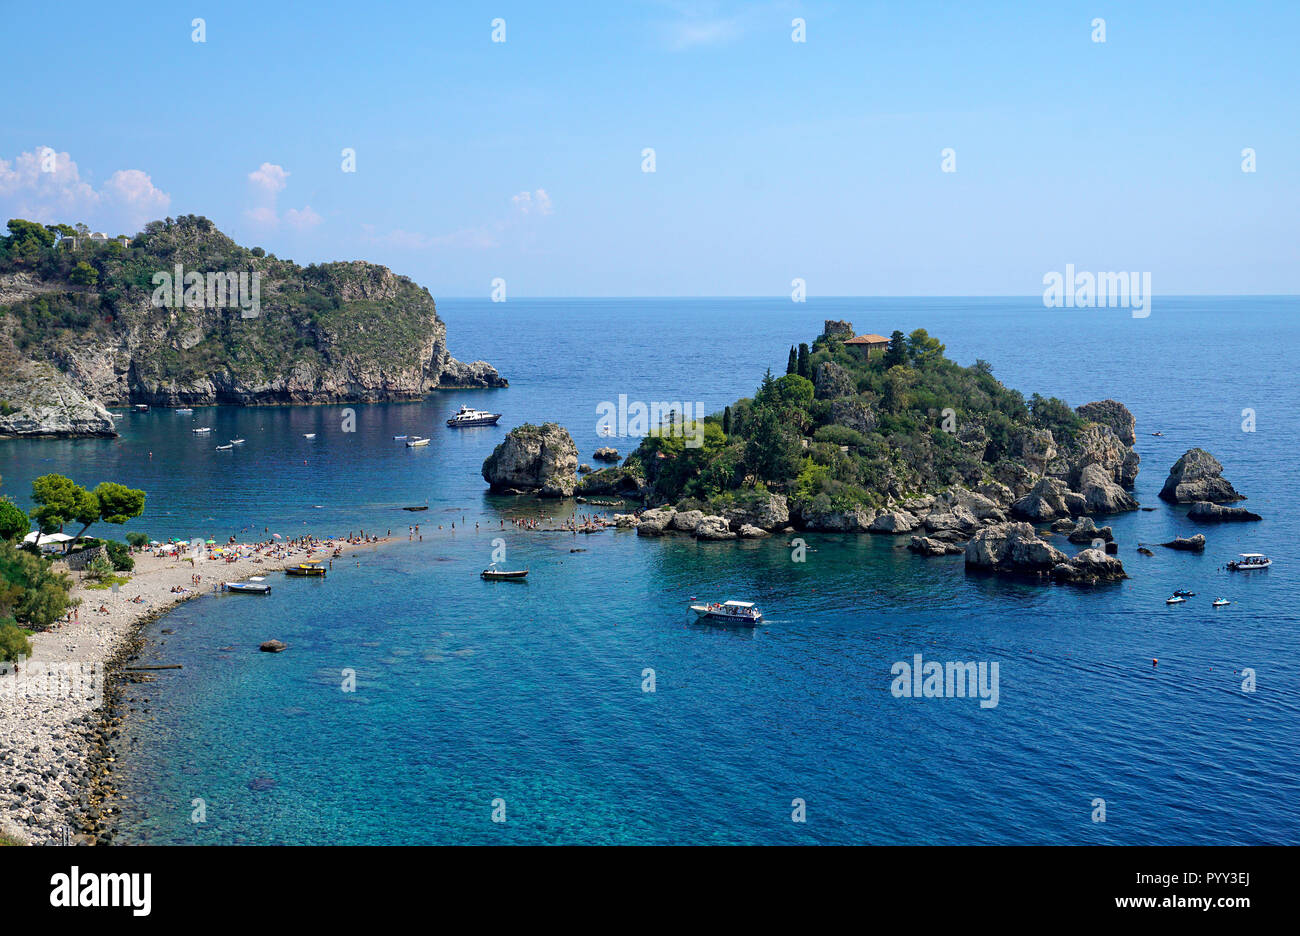 The island of Isola Bella is connected by a sandbank to the beach of Mazzarò, Taormina, Sicily, Italy - Stock Image